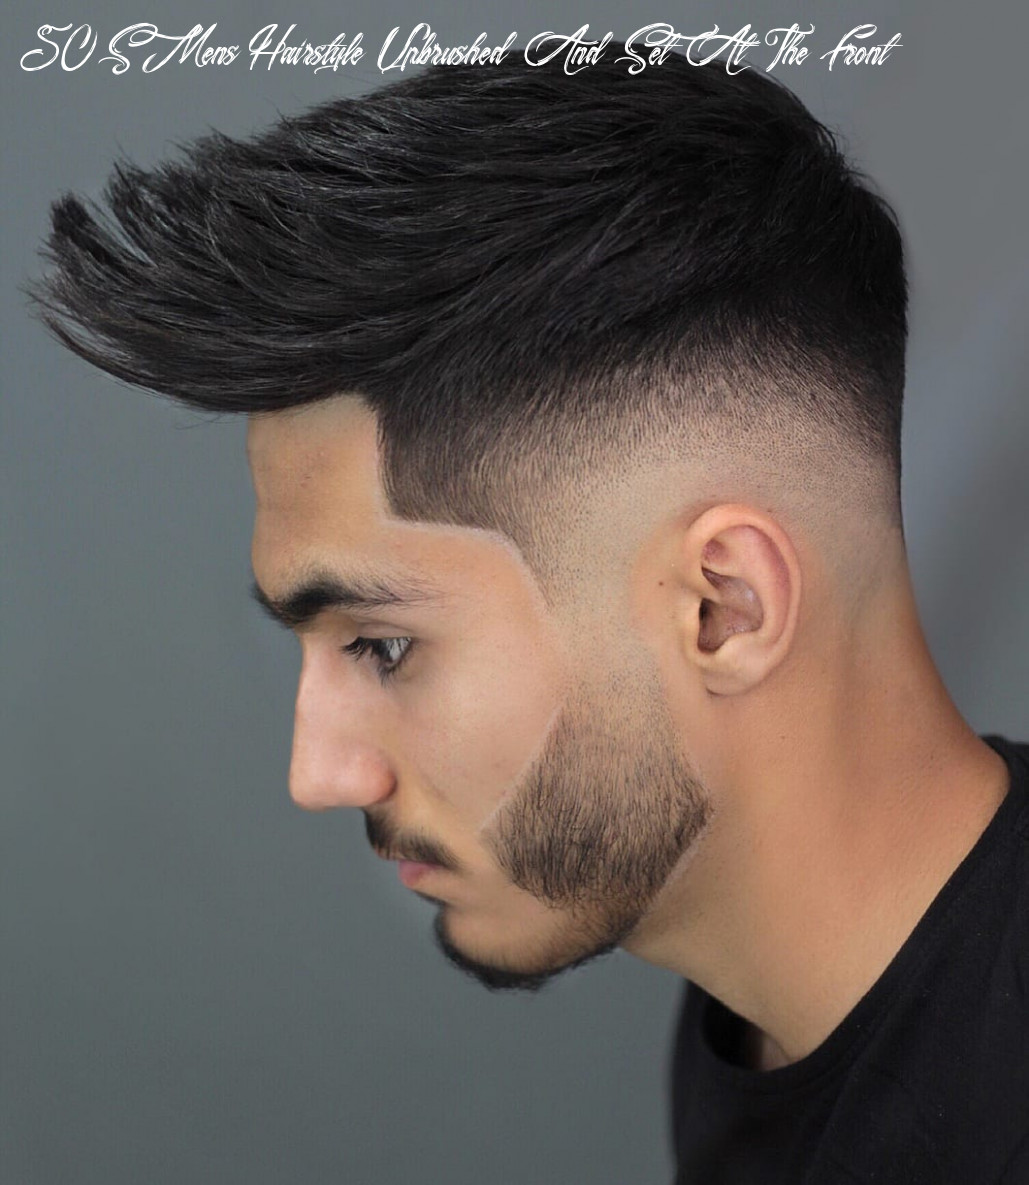 11 Adventurous Brush Up Hairstyle Ideas + How to Cut & Style